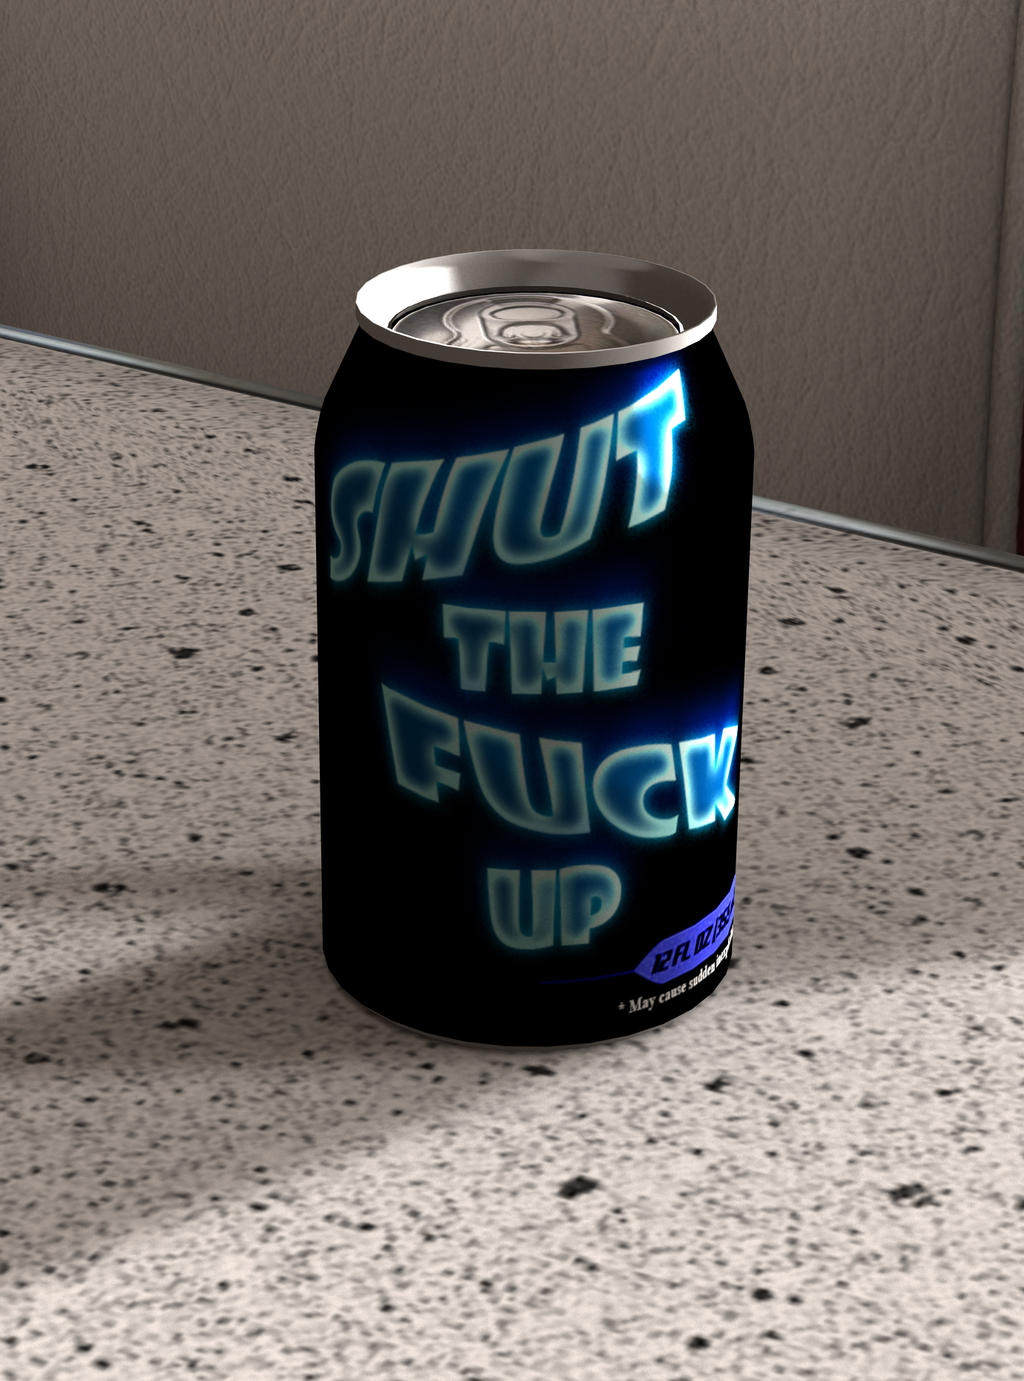 A can of shut the fuck up